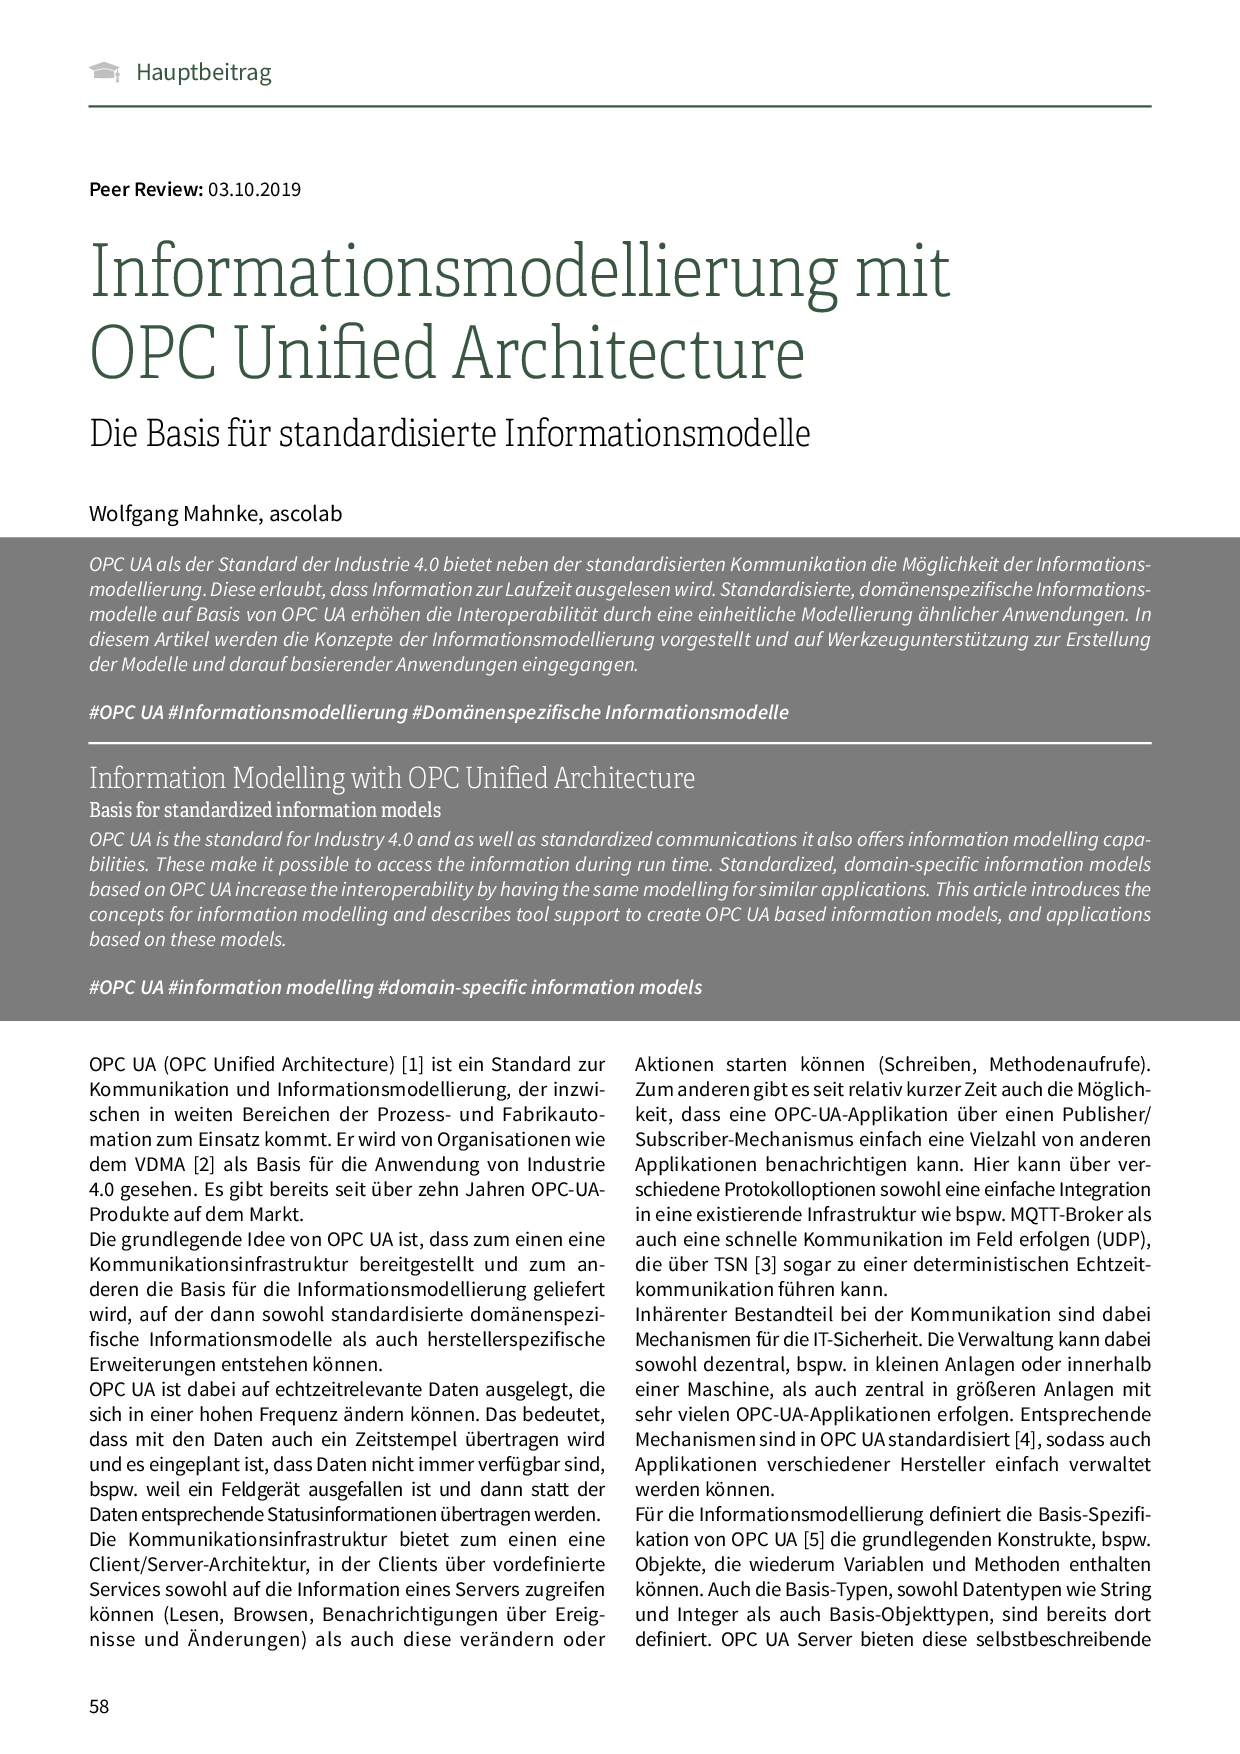 Informationsmodellierung mit OPC Unified Architecture